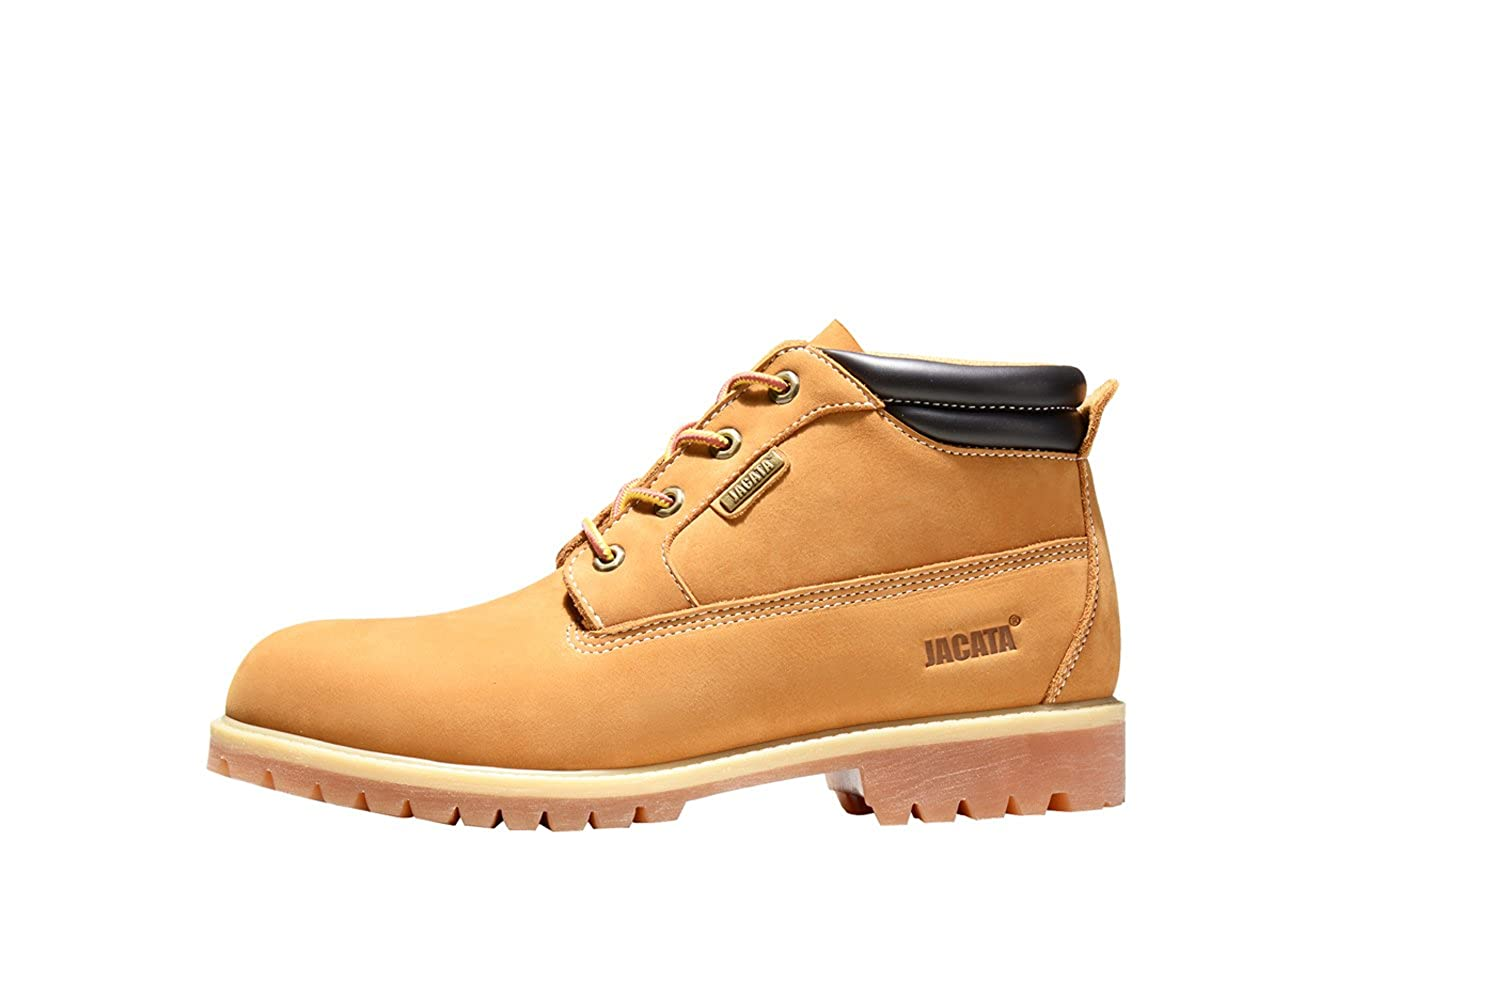 Jacata Mens Work Boots Water Resistant Boots Heavy Duty Natural Rubber Blend Soles